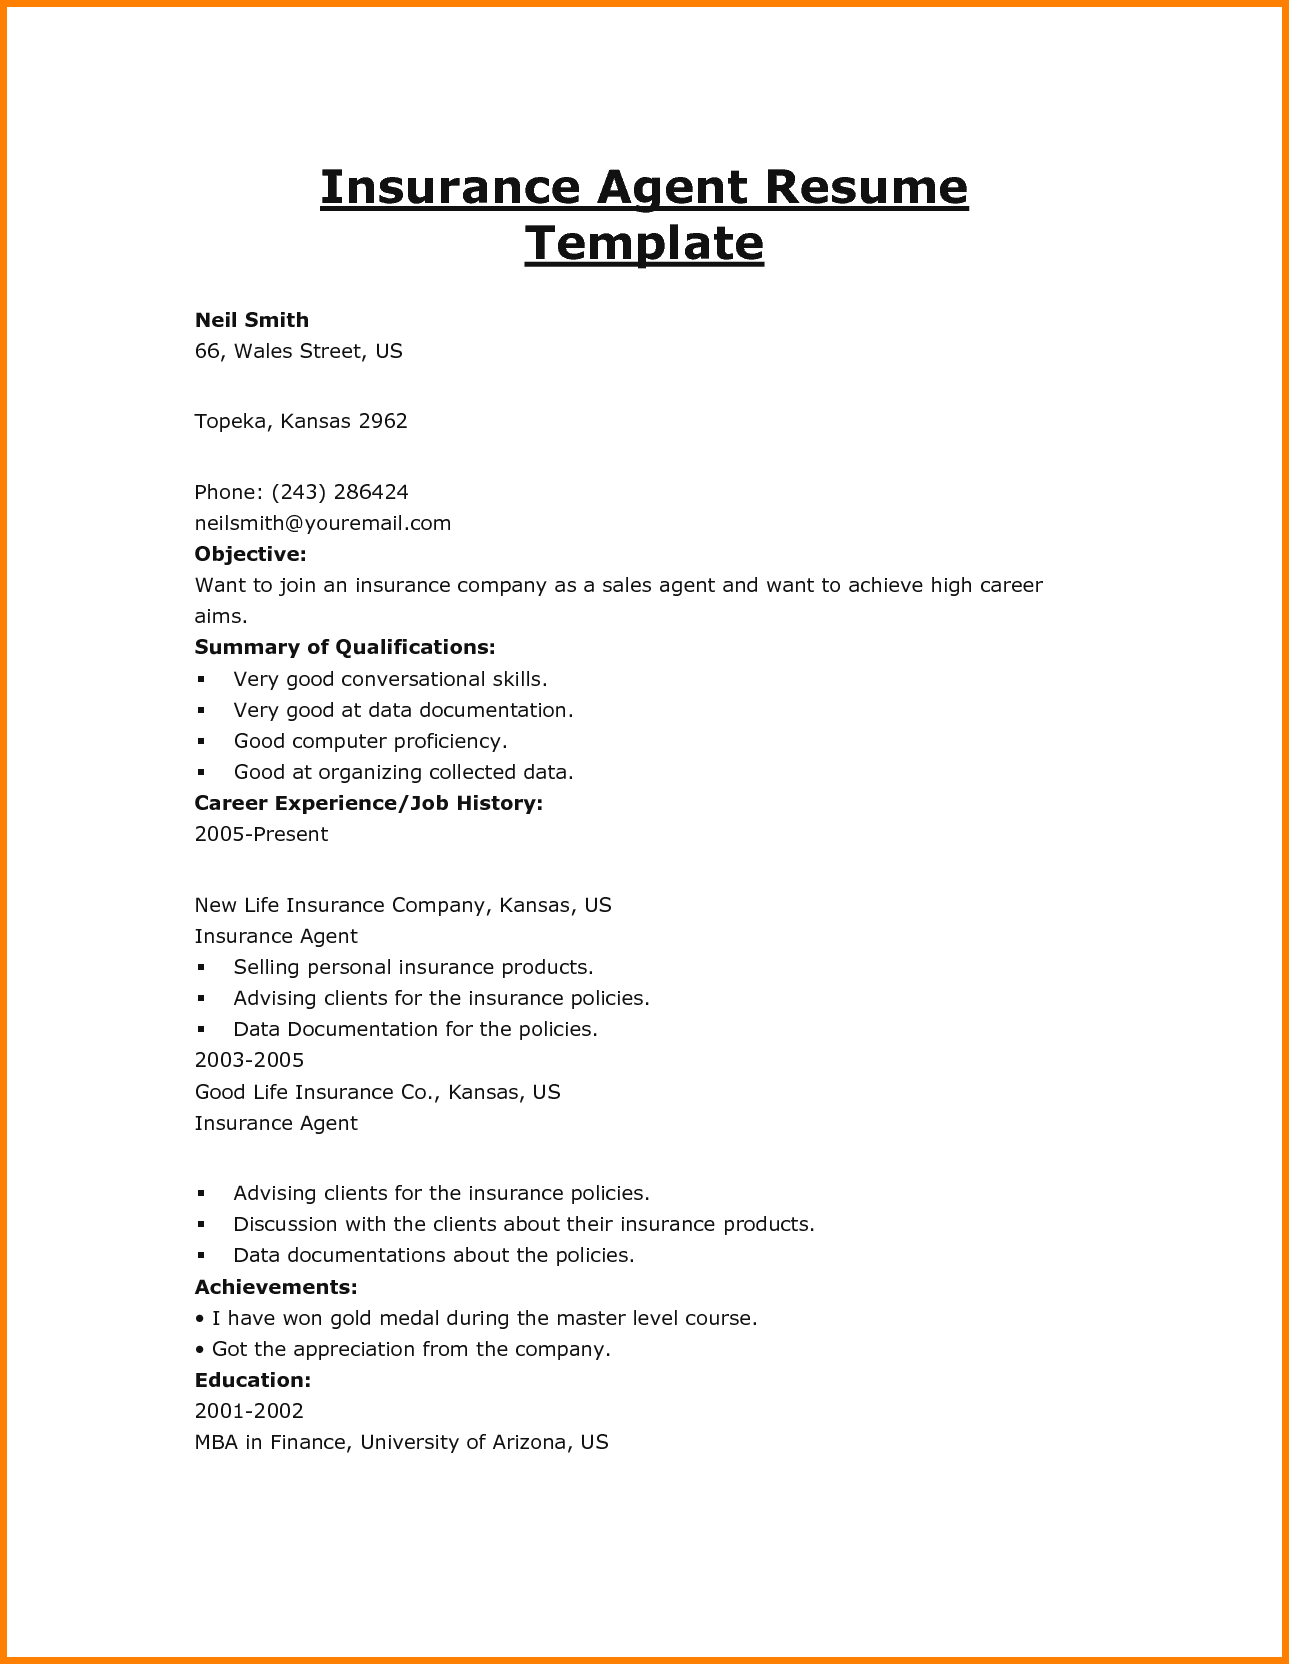 insurance agent resume samplesurance job description for home templates - Insurance Resume Examples